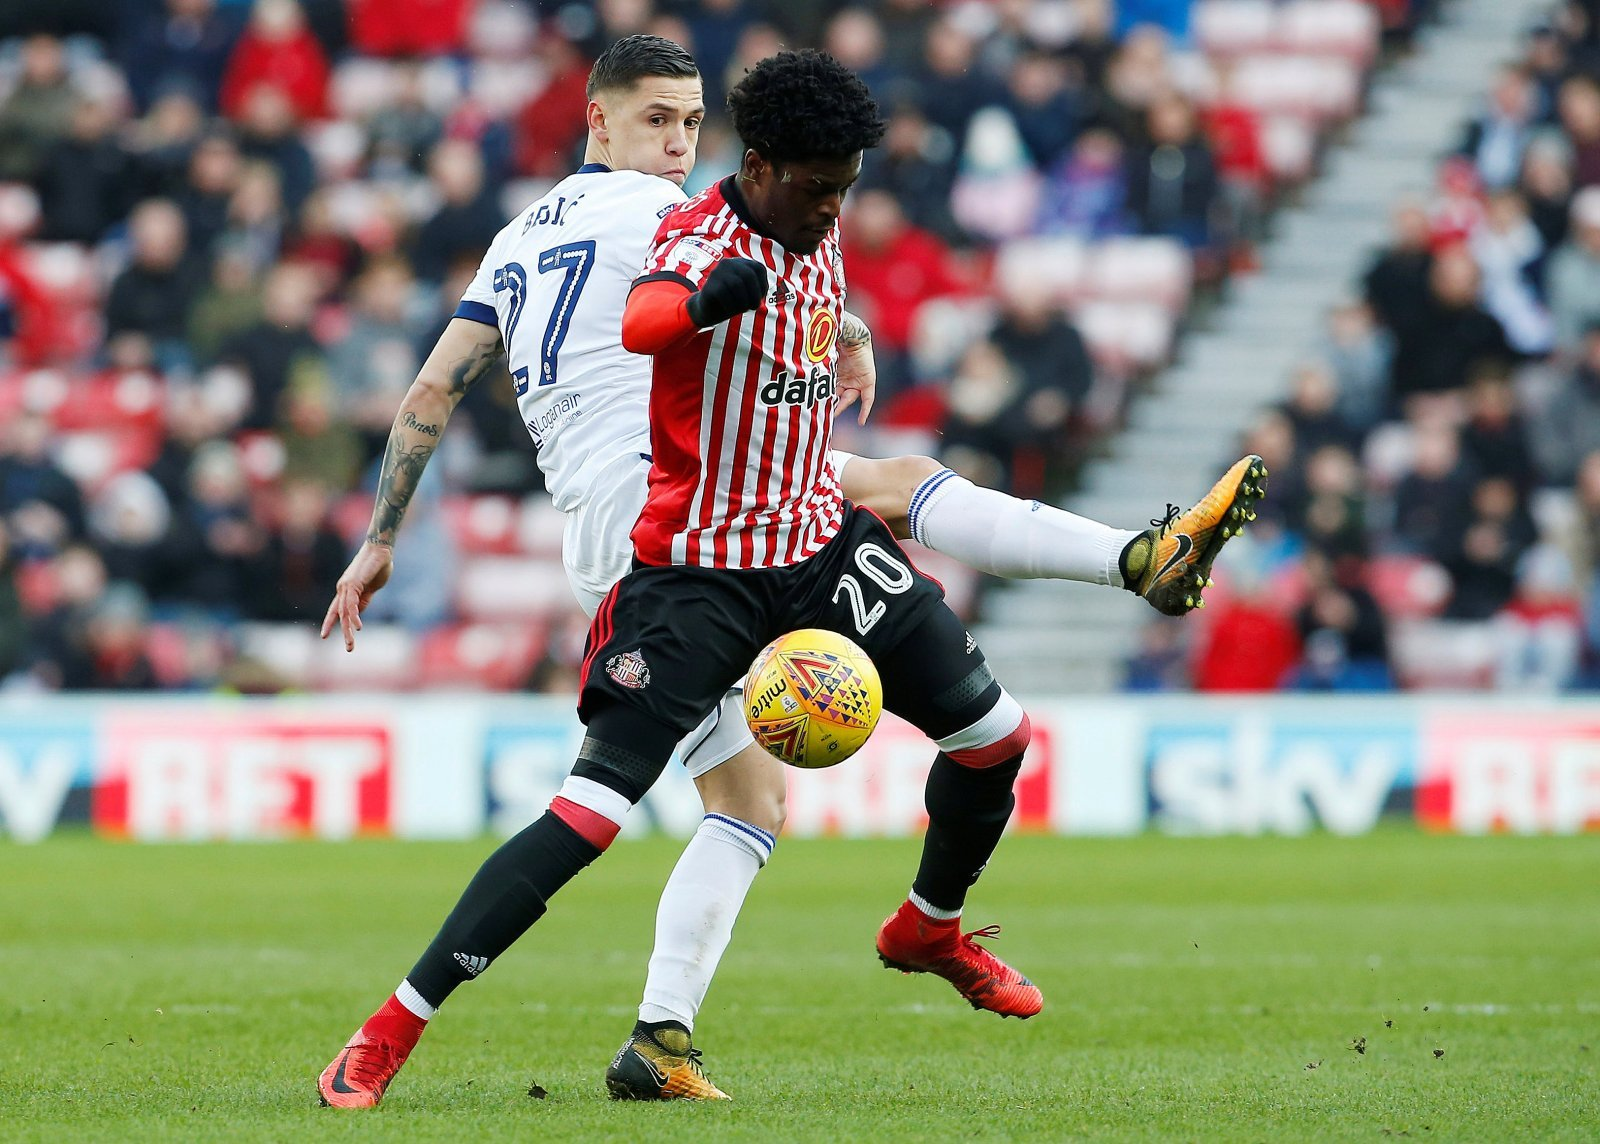 For only £4m, Southampton simply must seek to seal bargain Josh Maja deal